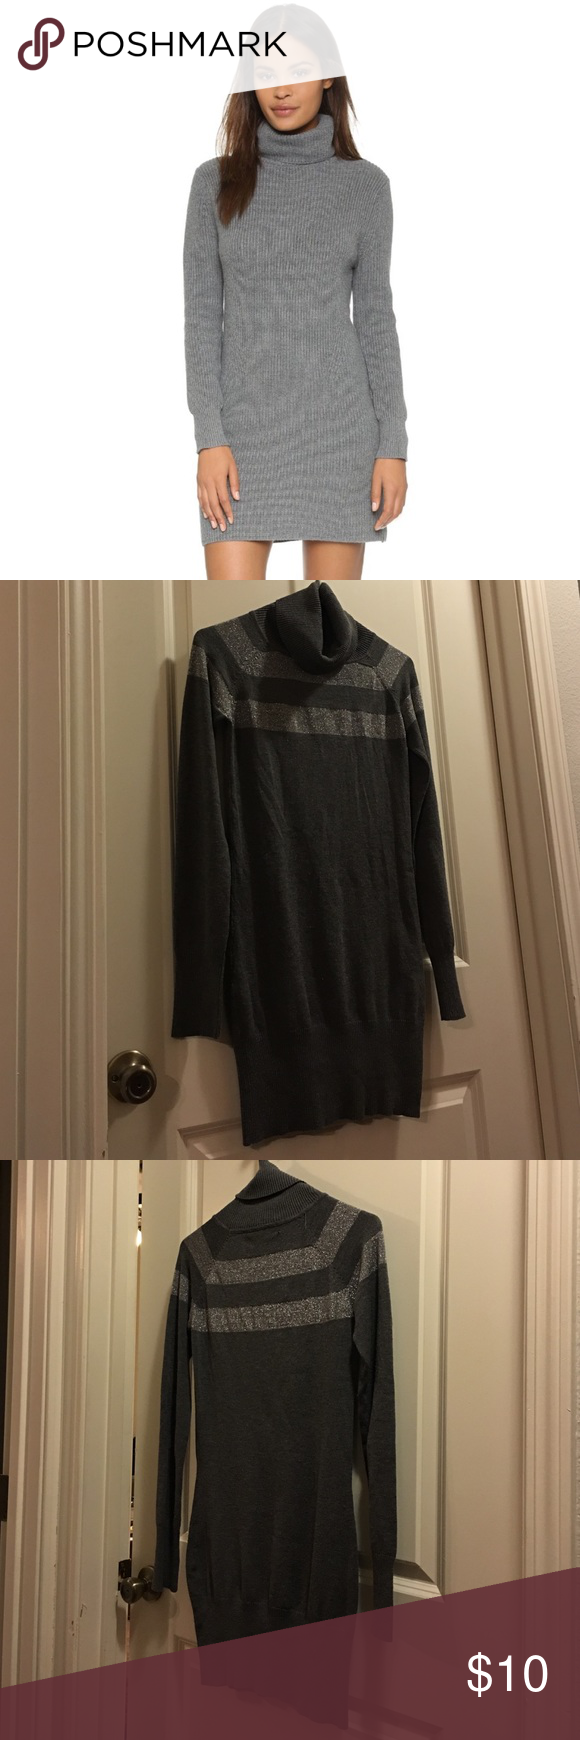 Which christmas gown ideas with holed - Grey And Silver Turtleneck Sweater Dress